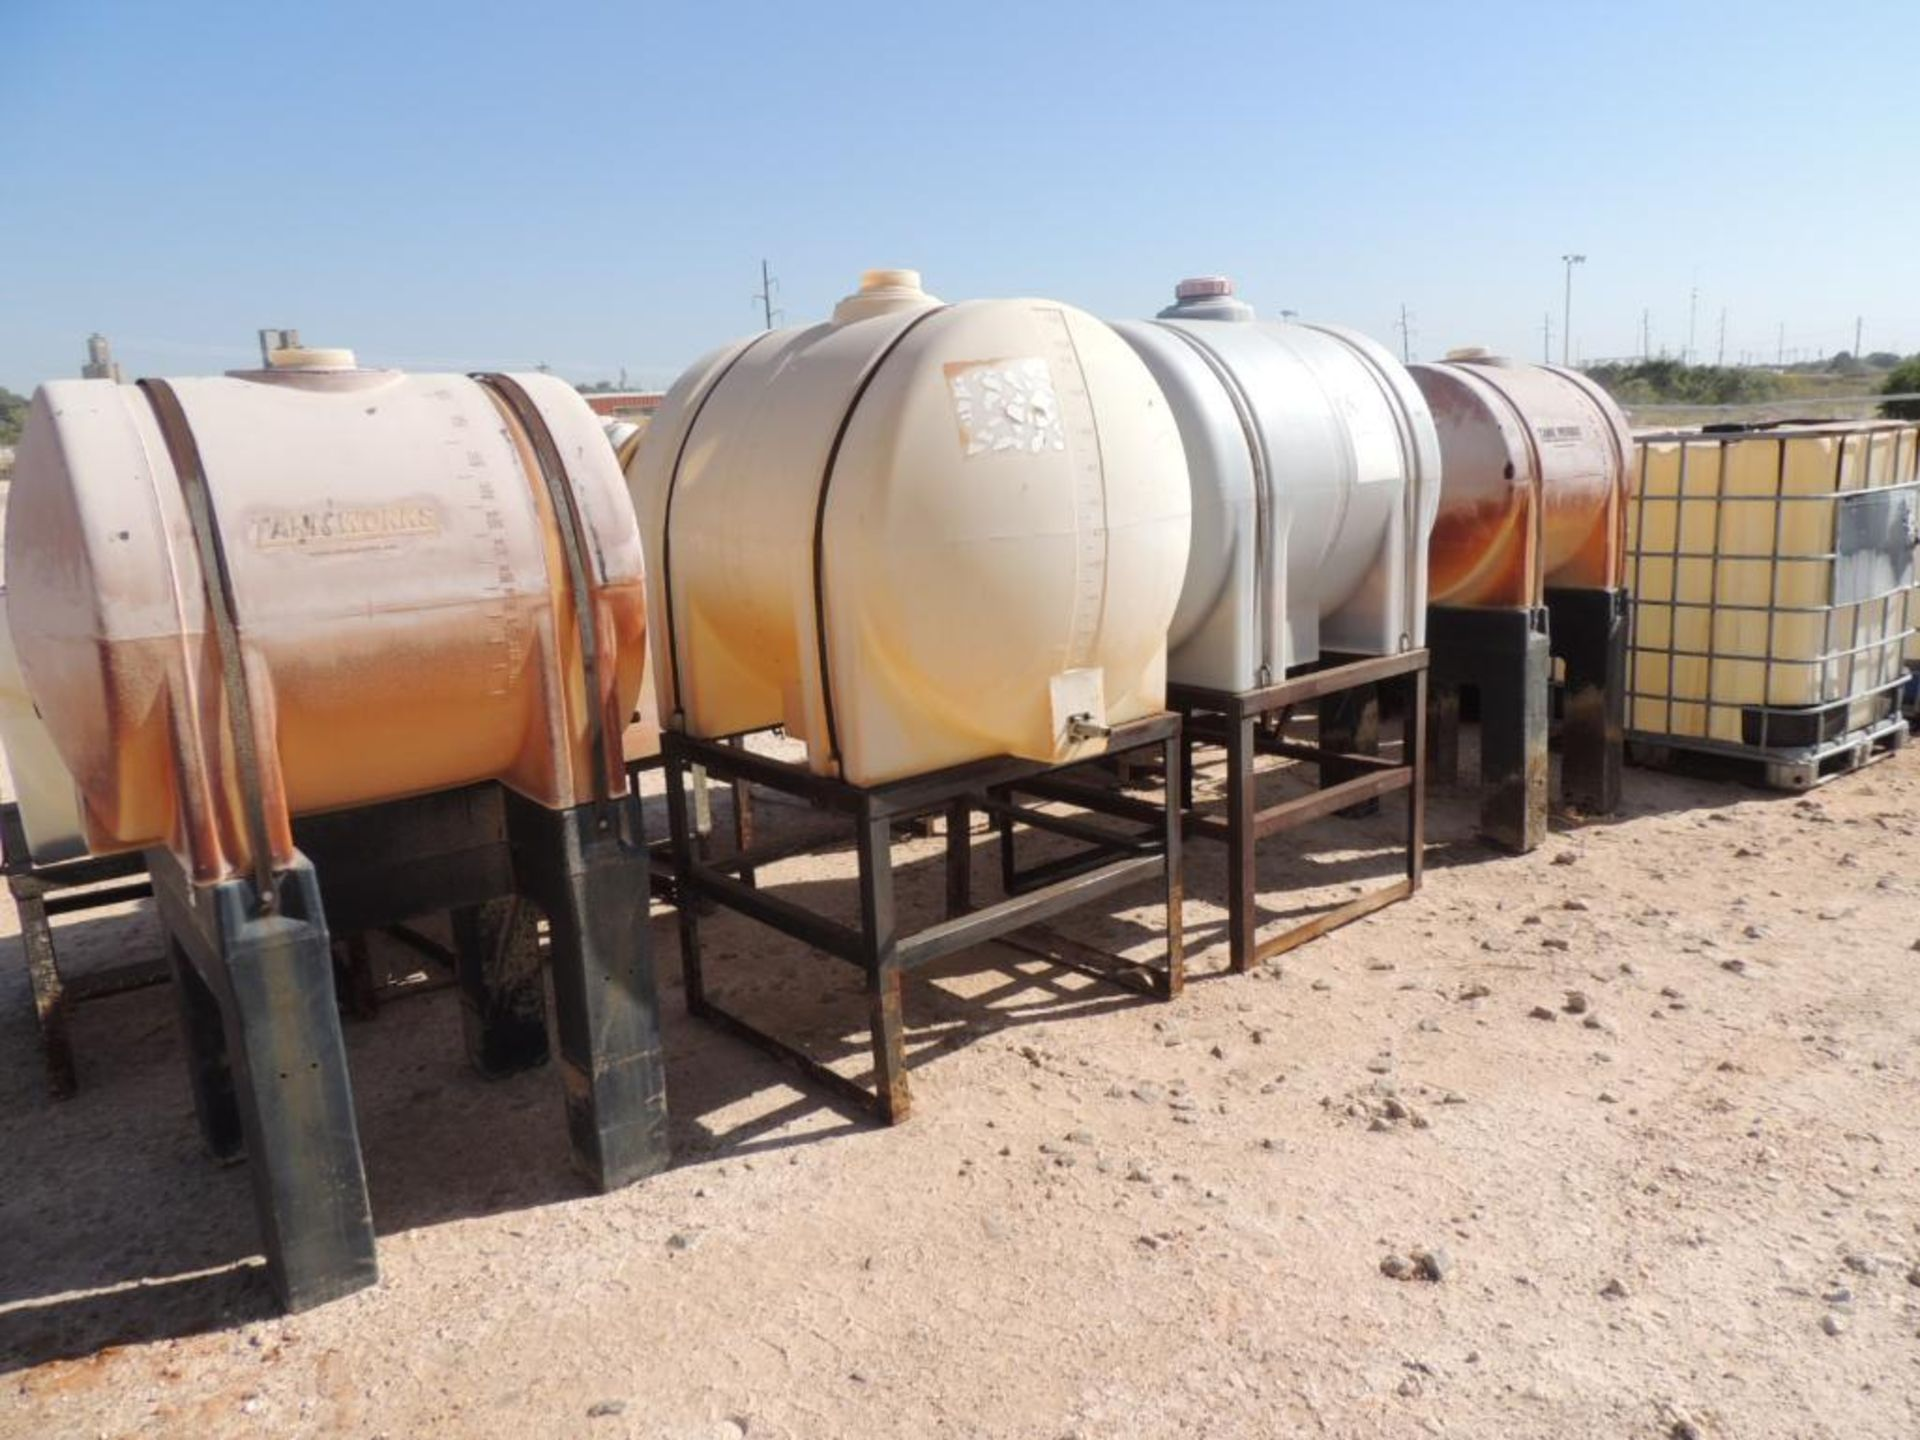 LOT: (10) Poly Tanks - (2) 225 Gallon, (8) 130 Gallon (LOCATED IN HENNESSEY, OK. - IN CHEM YARD) - Image 2 of 2